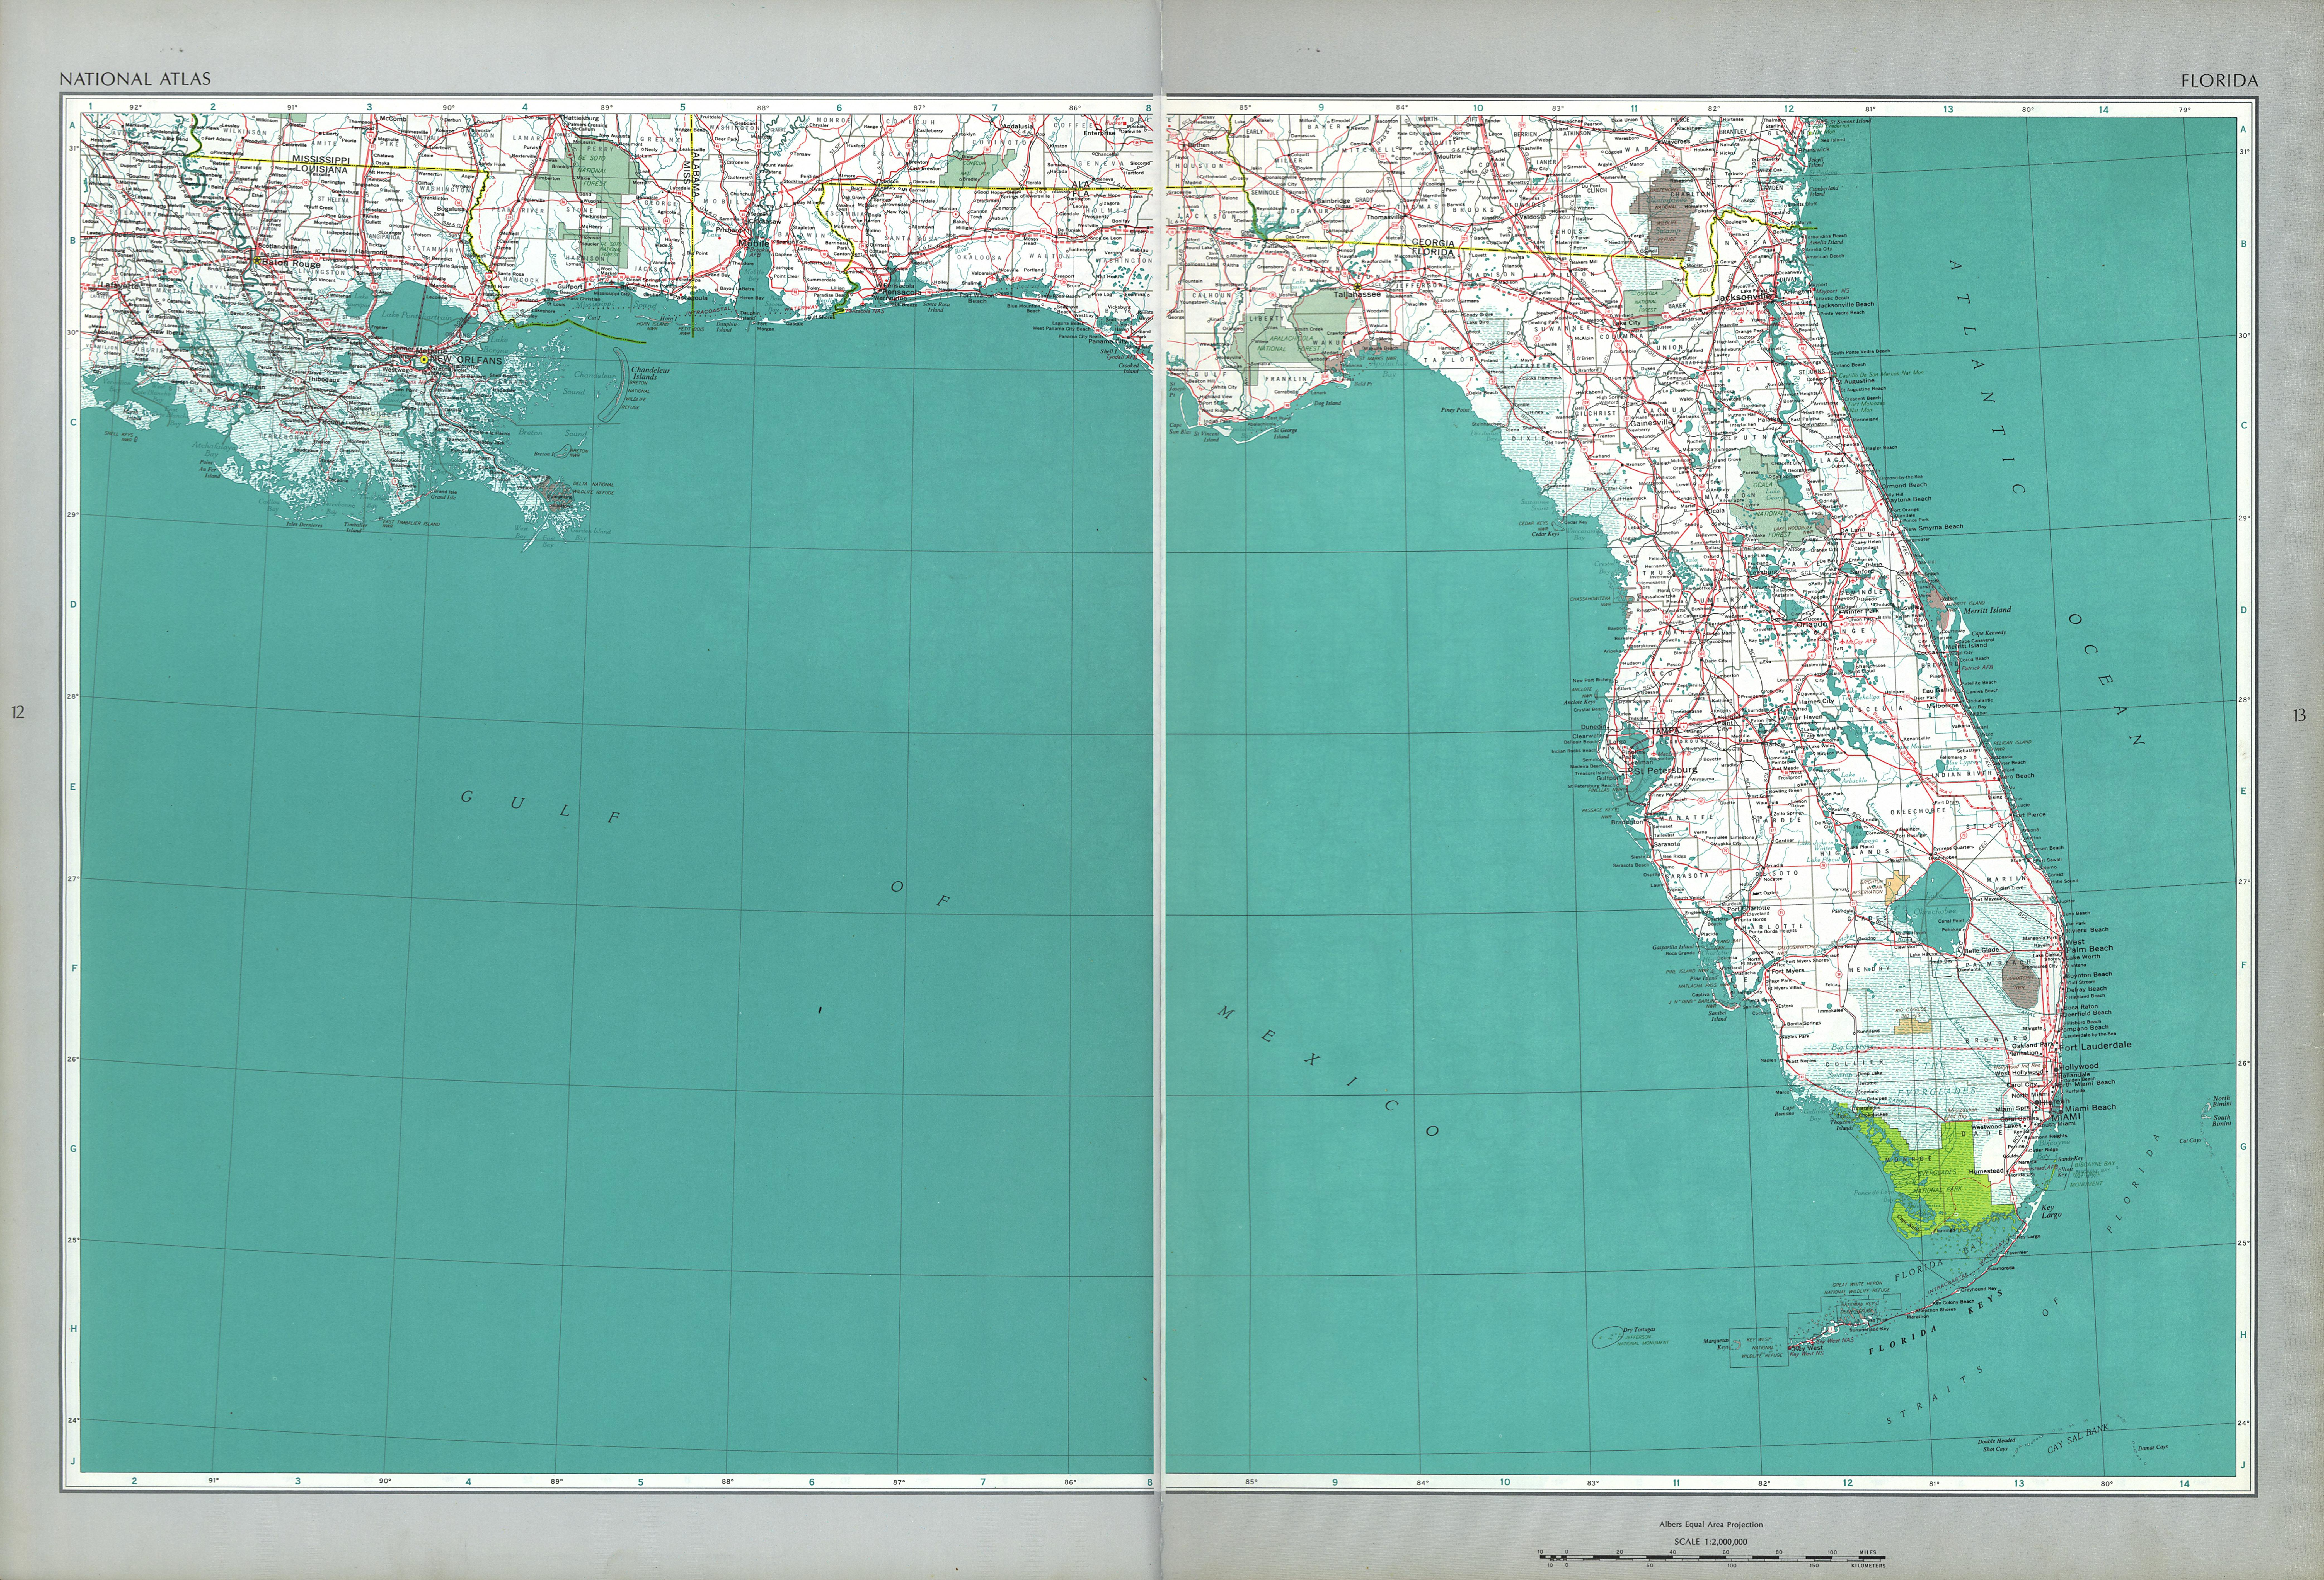 the national atlas of the united states of america 1970